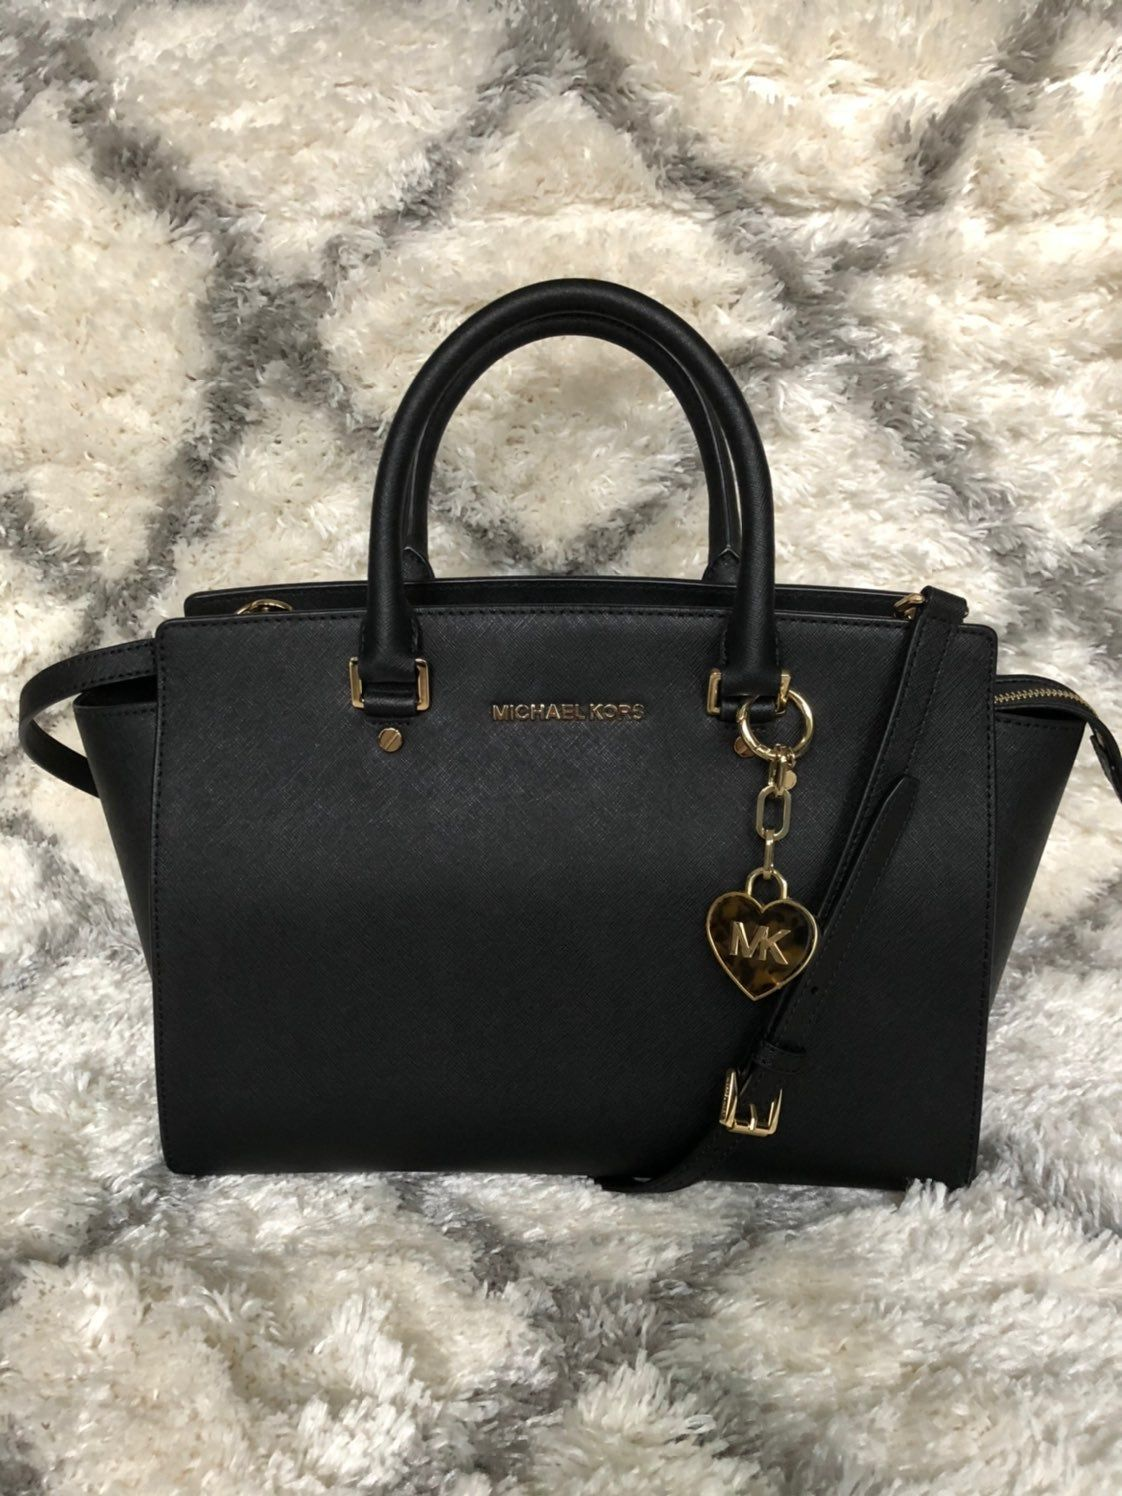 Mk Large Salma Satchel Bag With Mk Bag Charm I Used This Bag Very Gently And It Looks New Except I Marked On Satchel Bags Michael Kors Satchel Lady Dior Bag